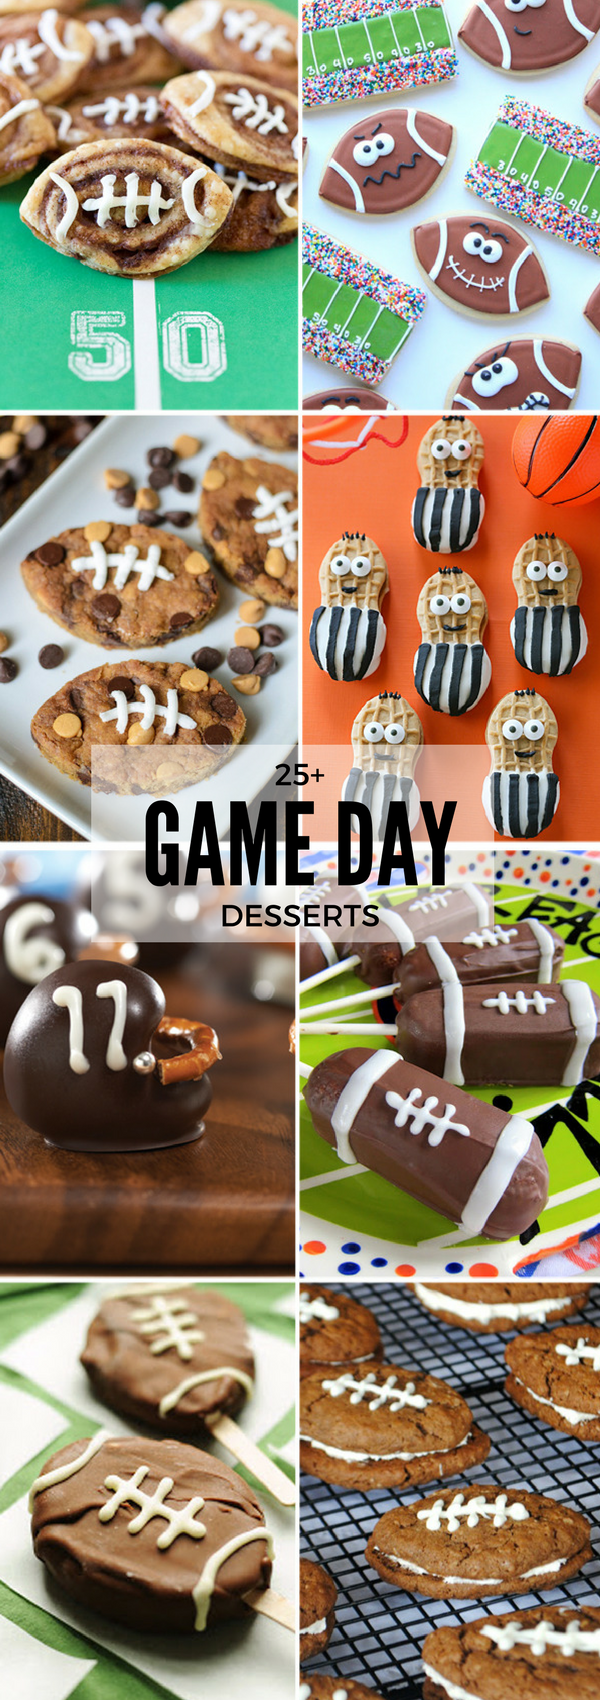 25+ Game Day Desserts | NoBiggie.net